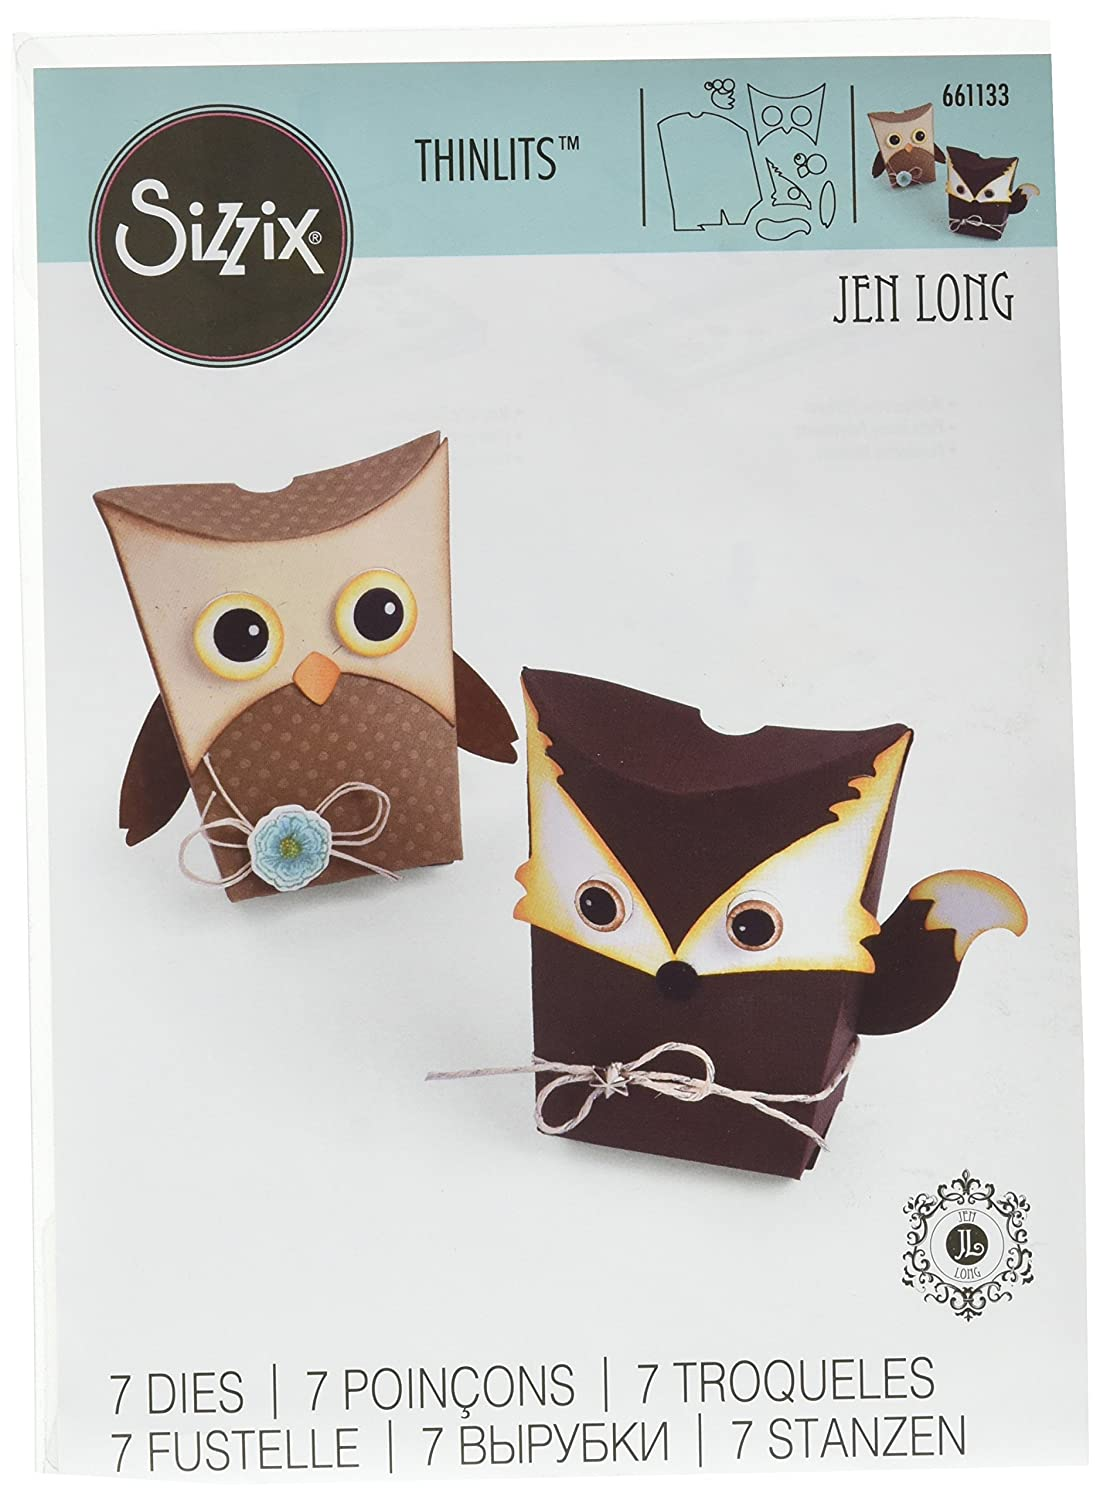 Amazon Sizzix 661133 Box Owl Fox Thinlits Die Set By Jen Long